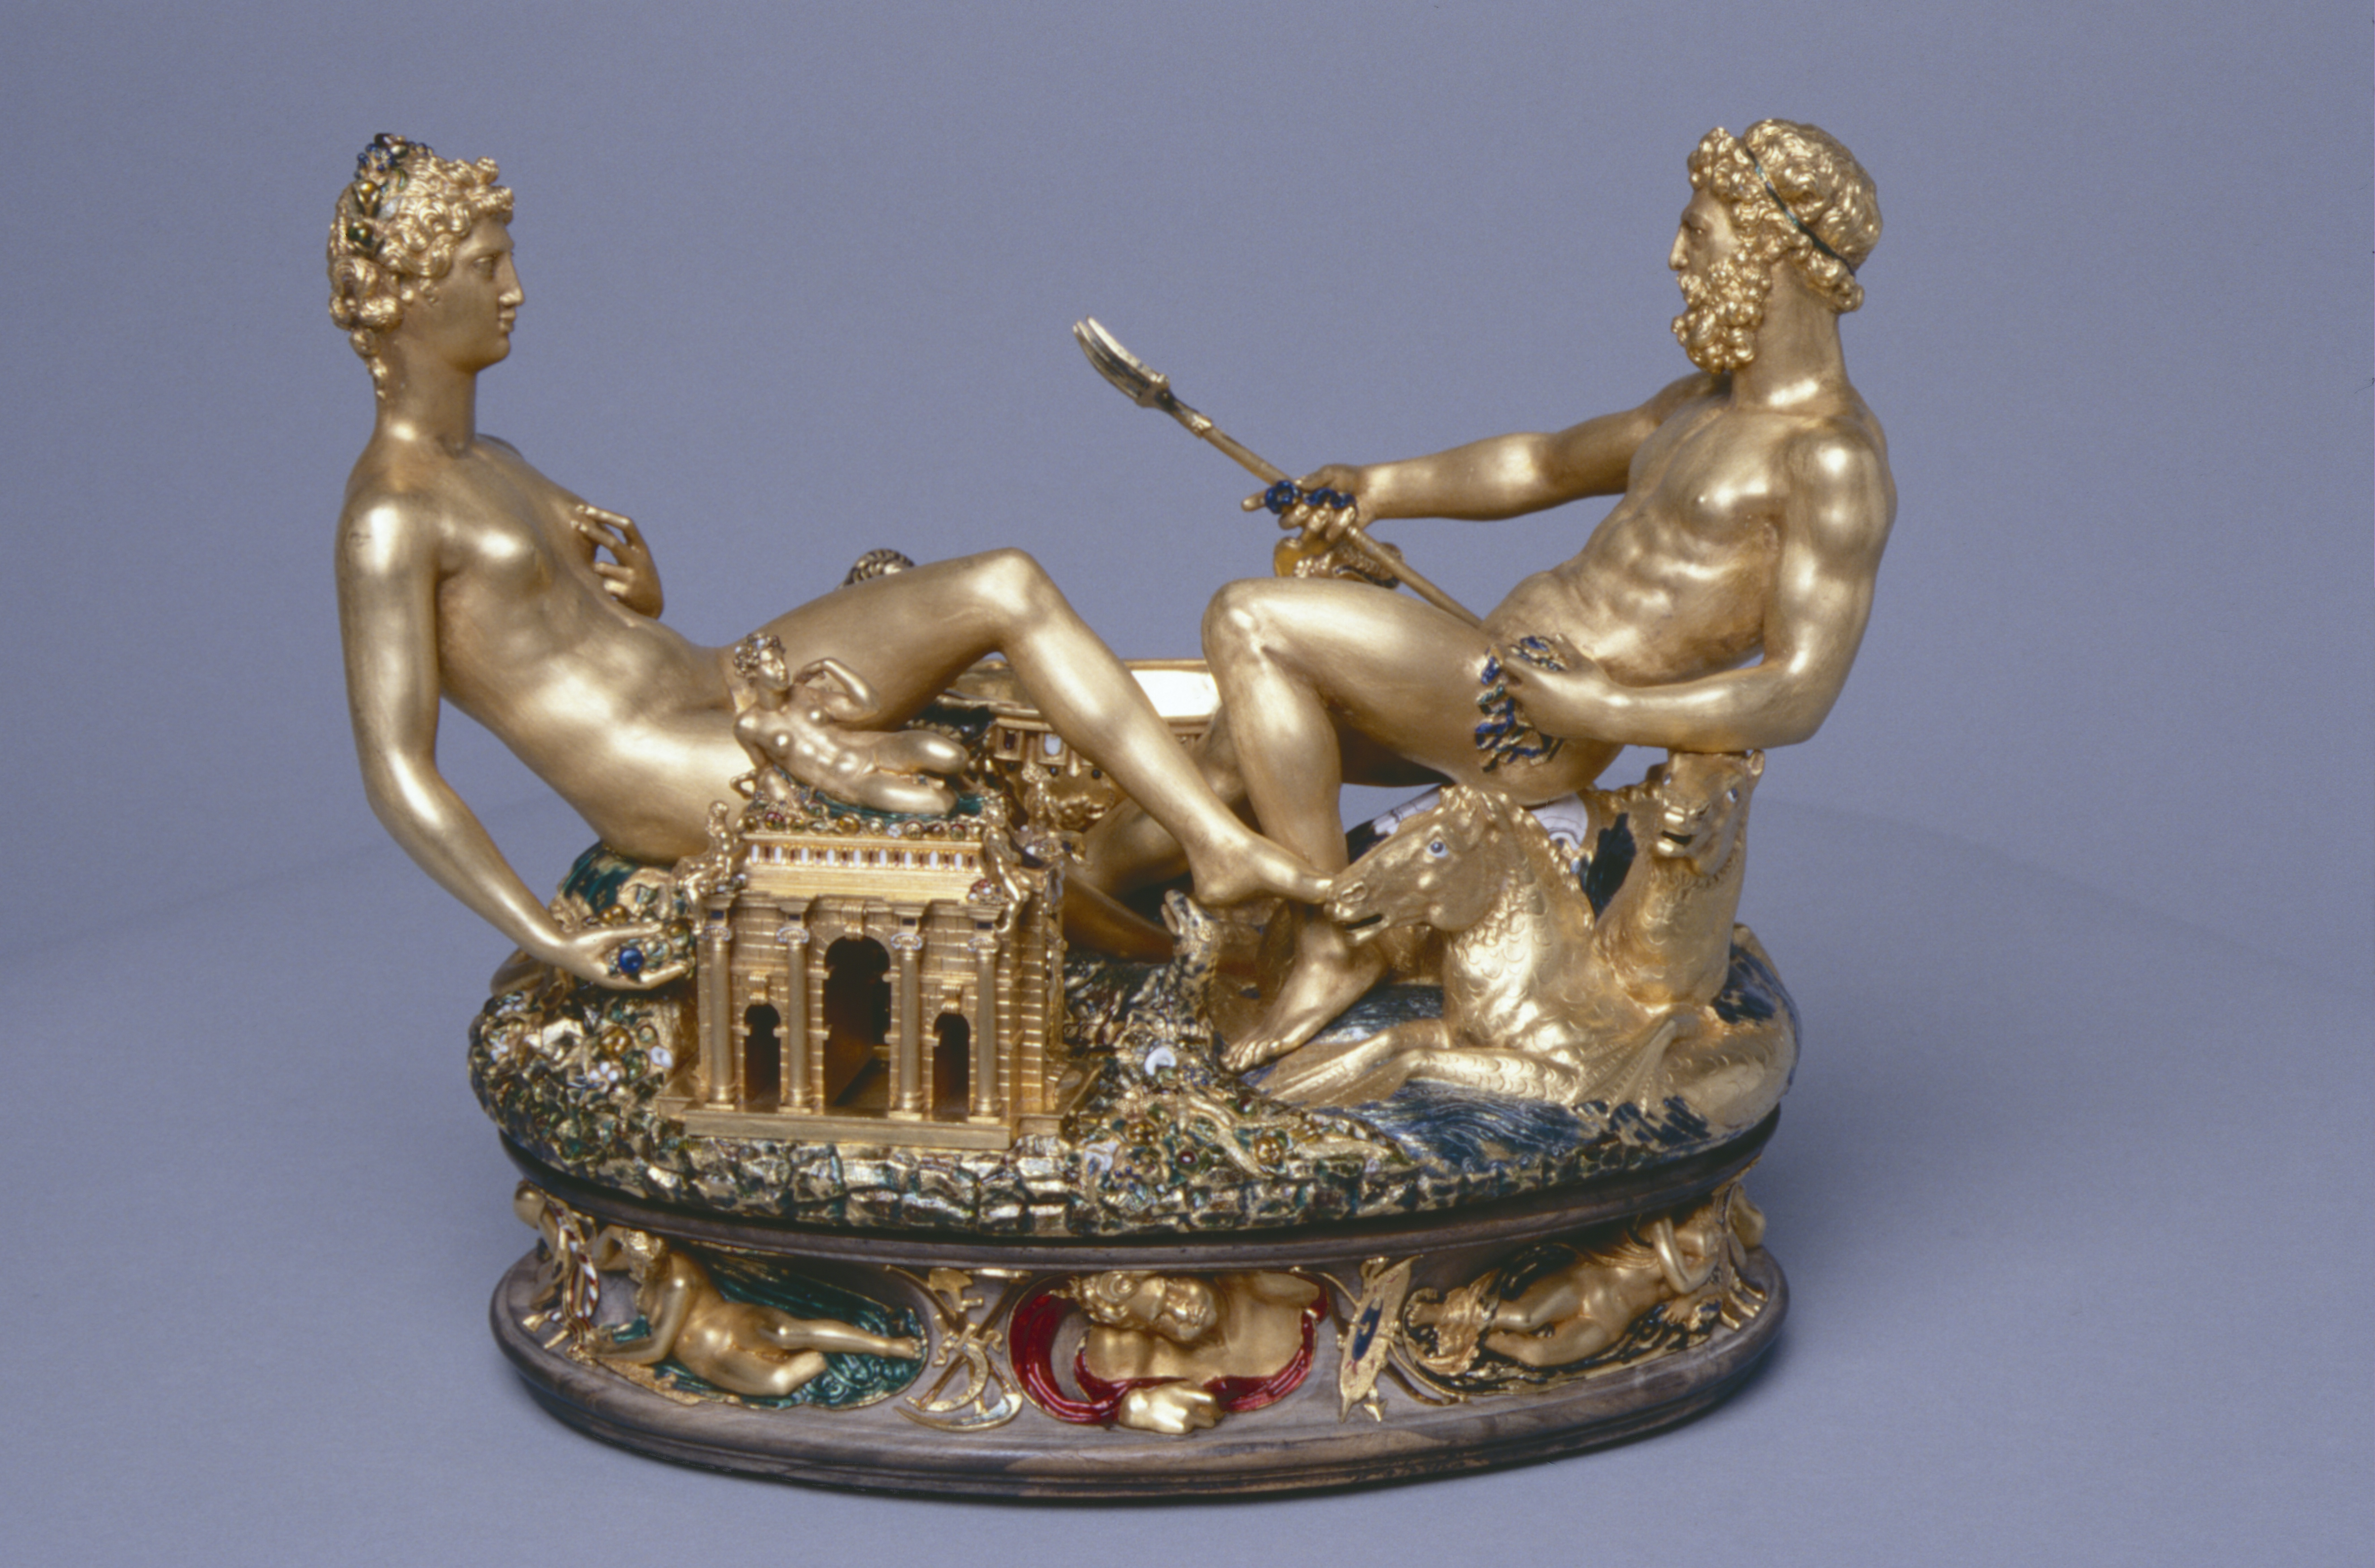 Cellini's Gold Salt-Cellar: A Masterpiece of Mannerism - a talk by Dr Charles Avery